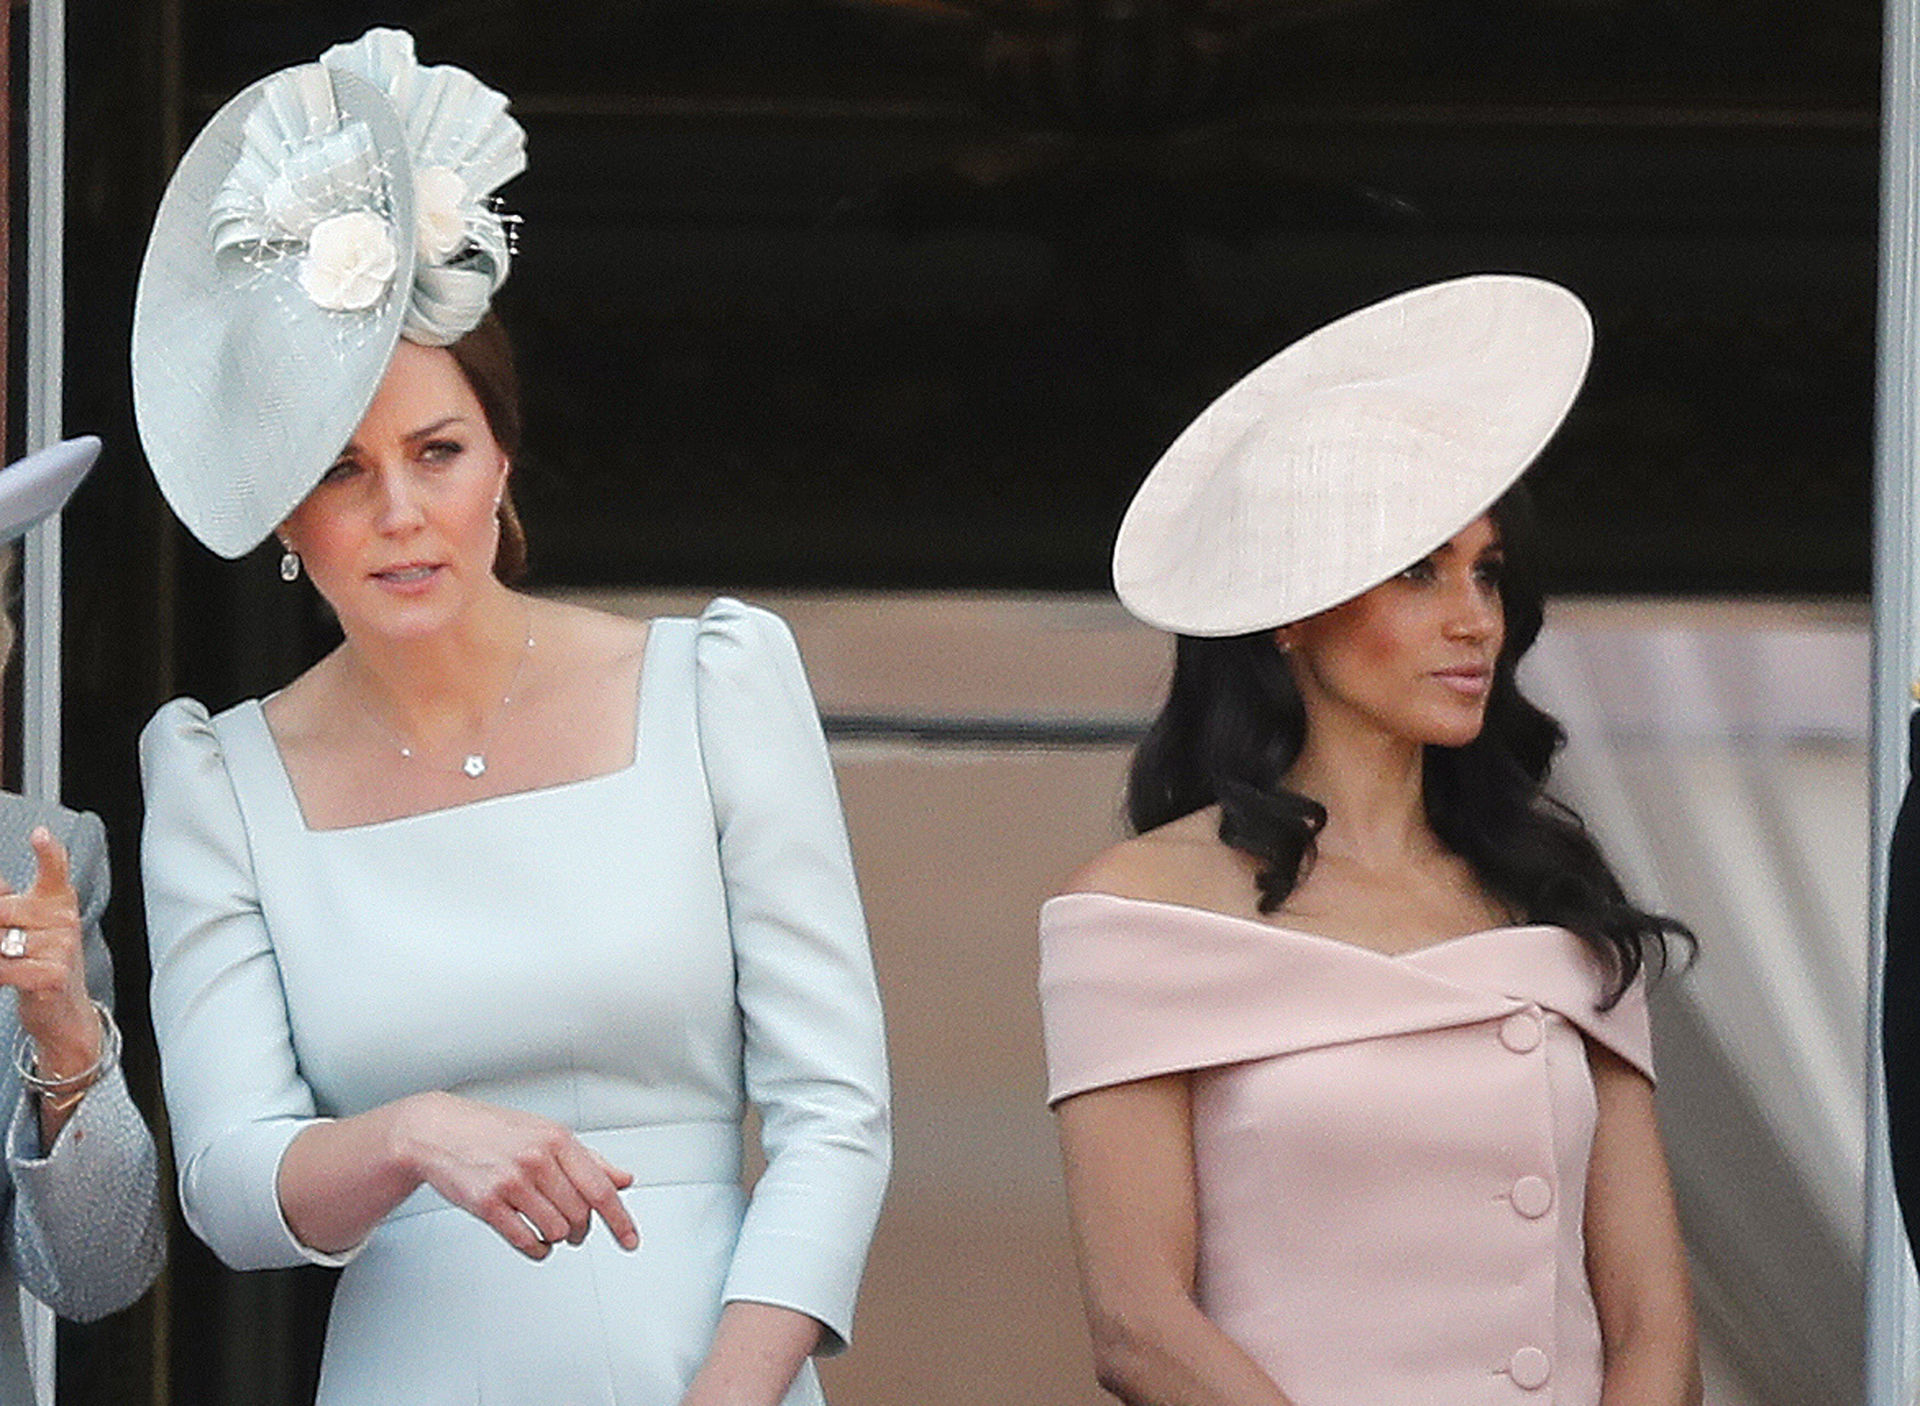 meghan-markle-kate-middleton.jpg